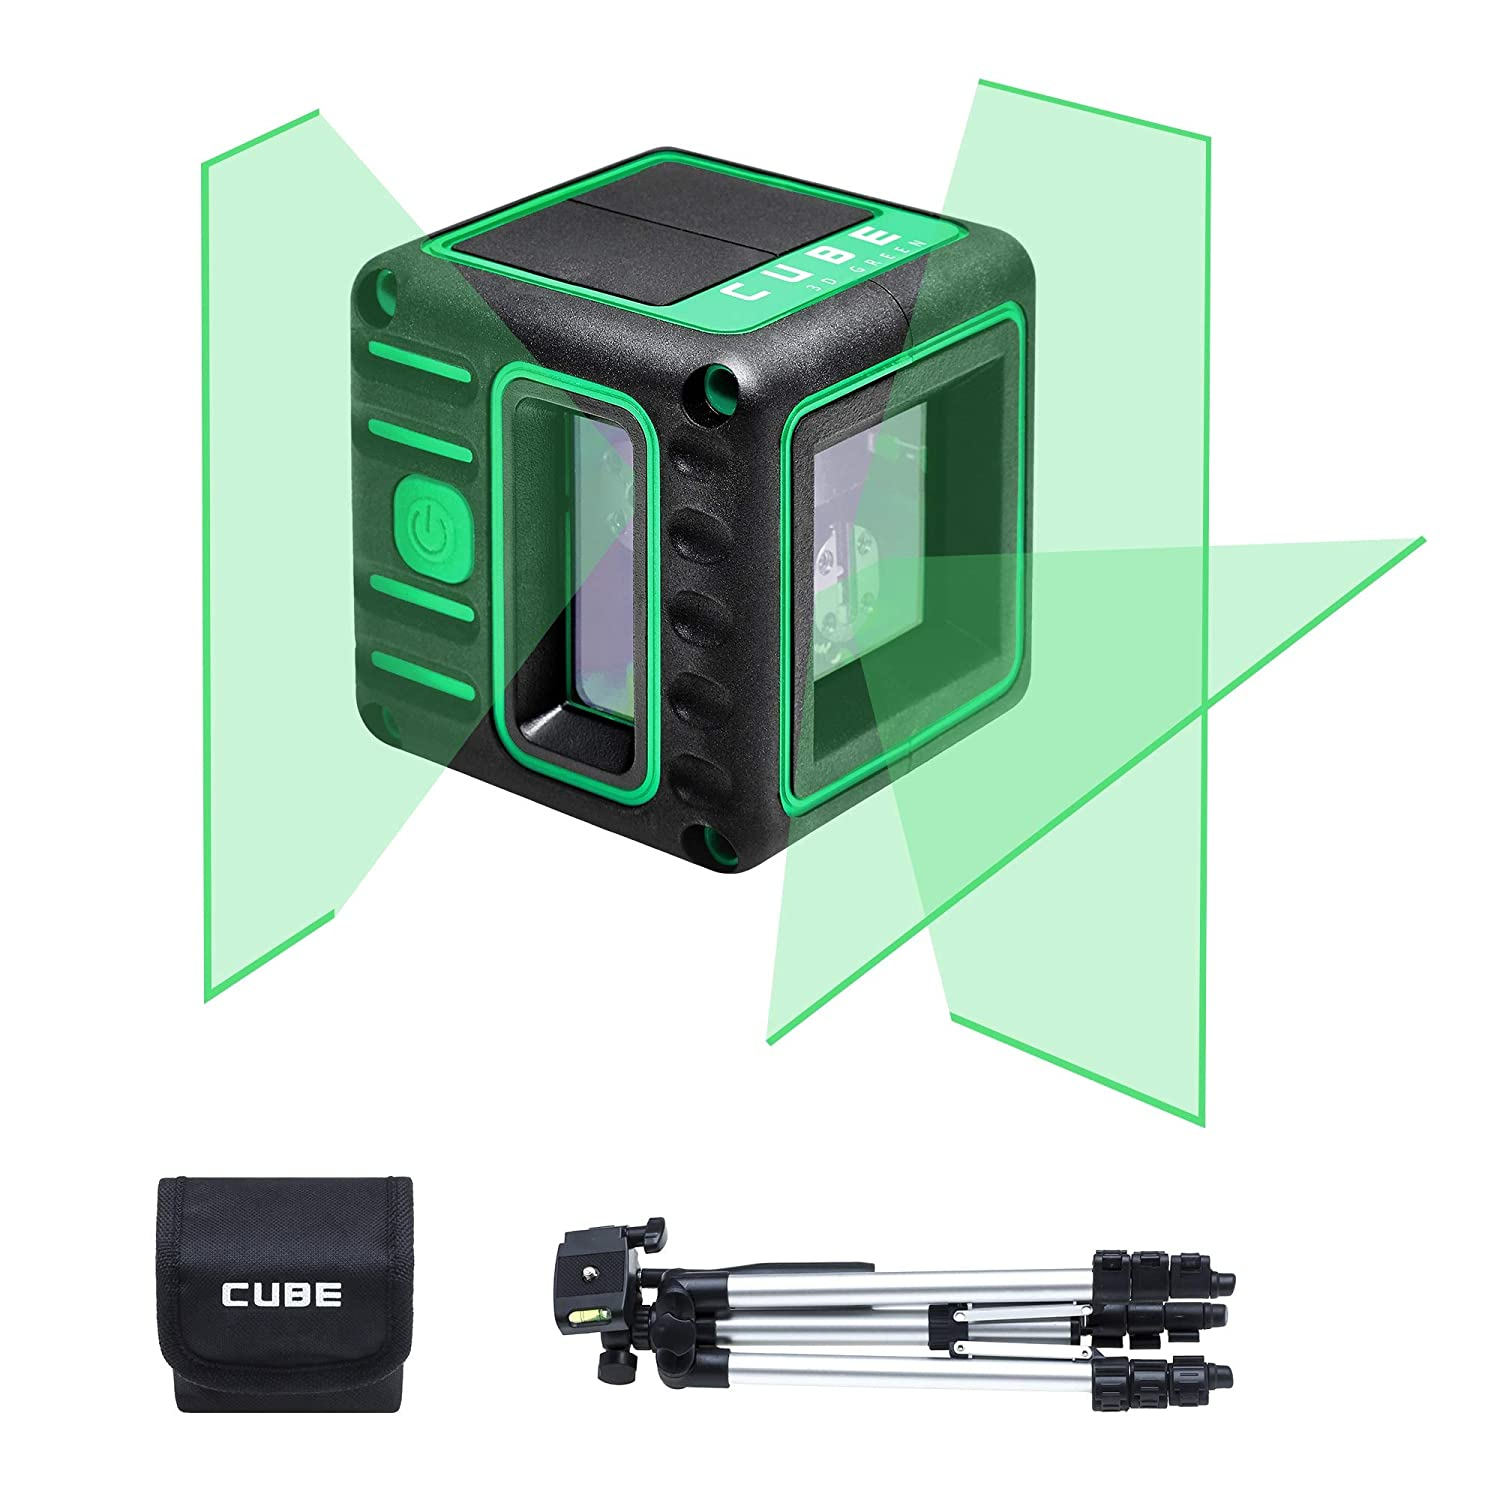 230 ft w//Laser Receiver 65 ft Range 2 Vertical and 1 Horizontal Lines Cross Self-Leveling Laser Level ADA Cube 3D Basic Edition